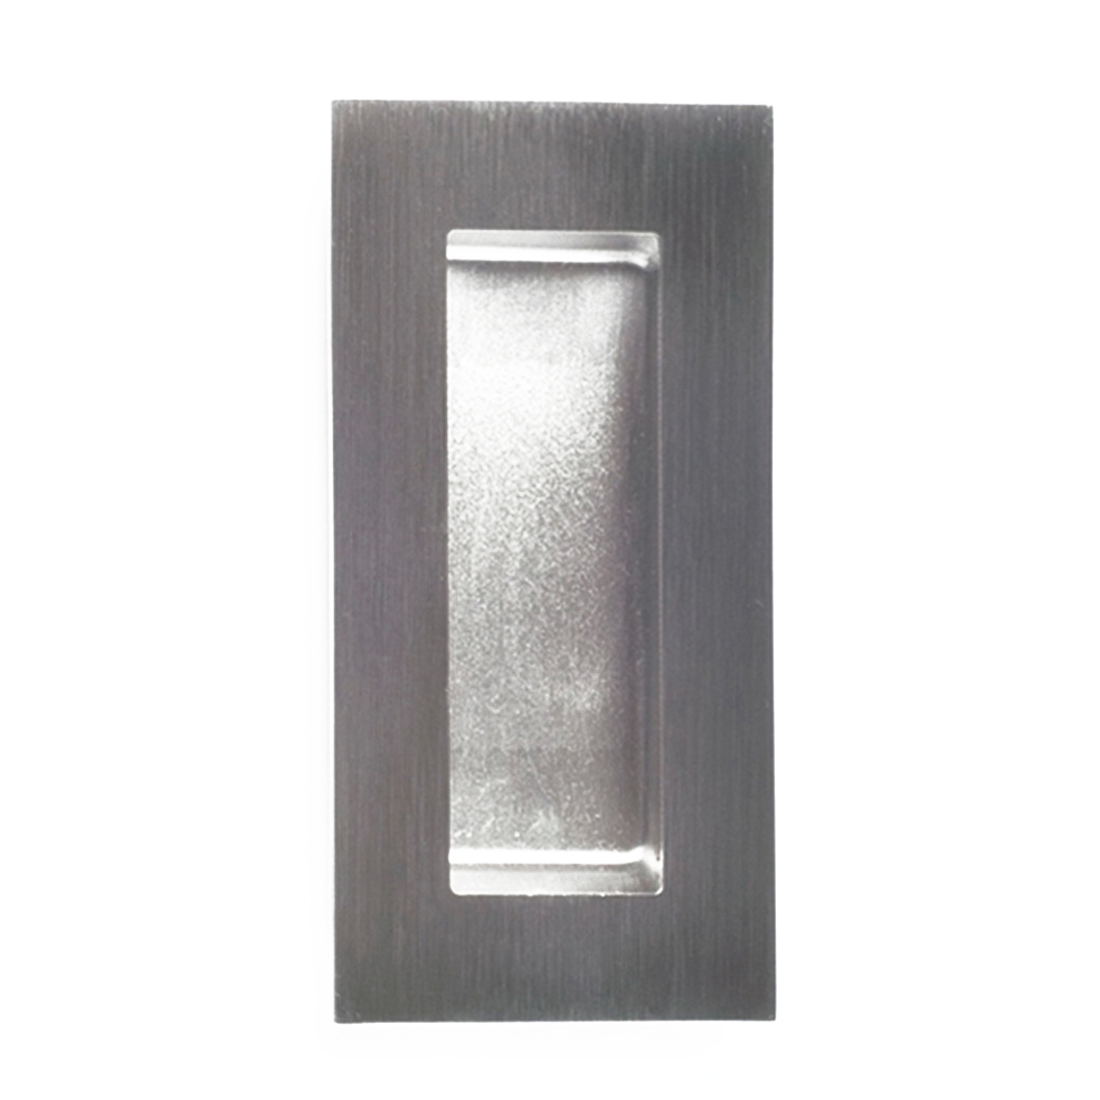 Square Edge Concealed Fix Flush Pull 102 x 52 x 10mm Brushed Stainless Steel 733SS